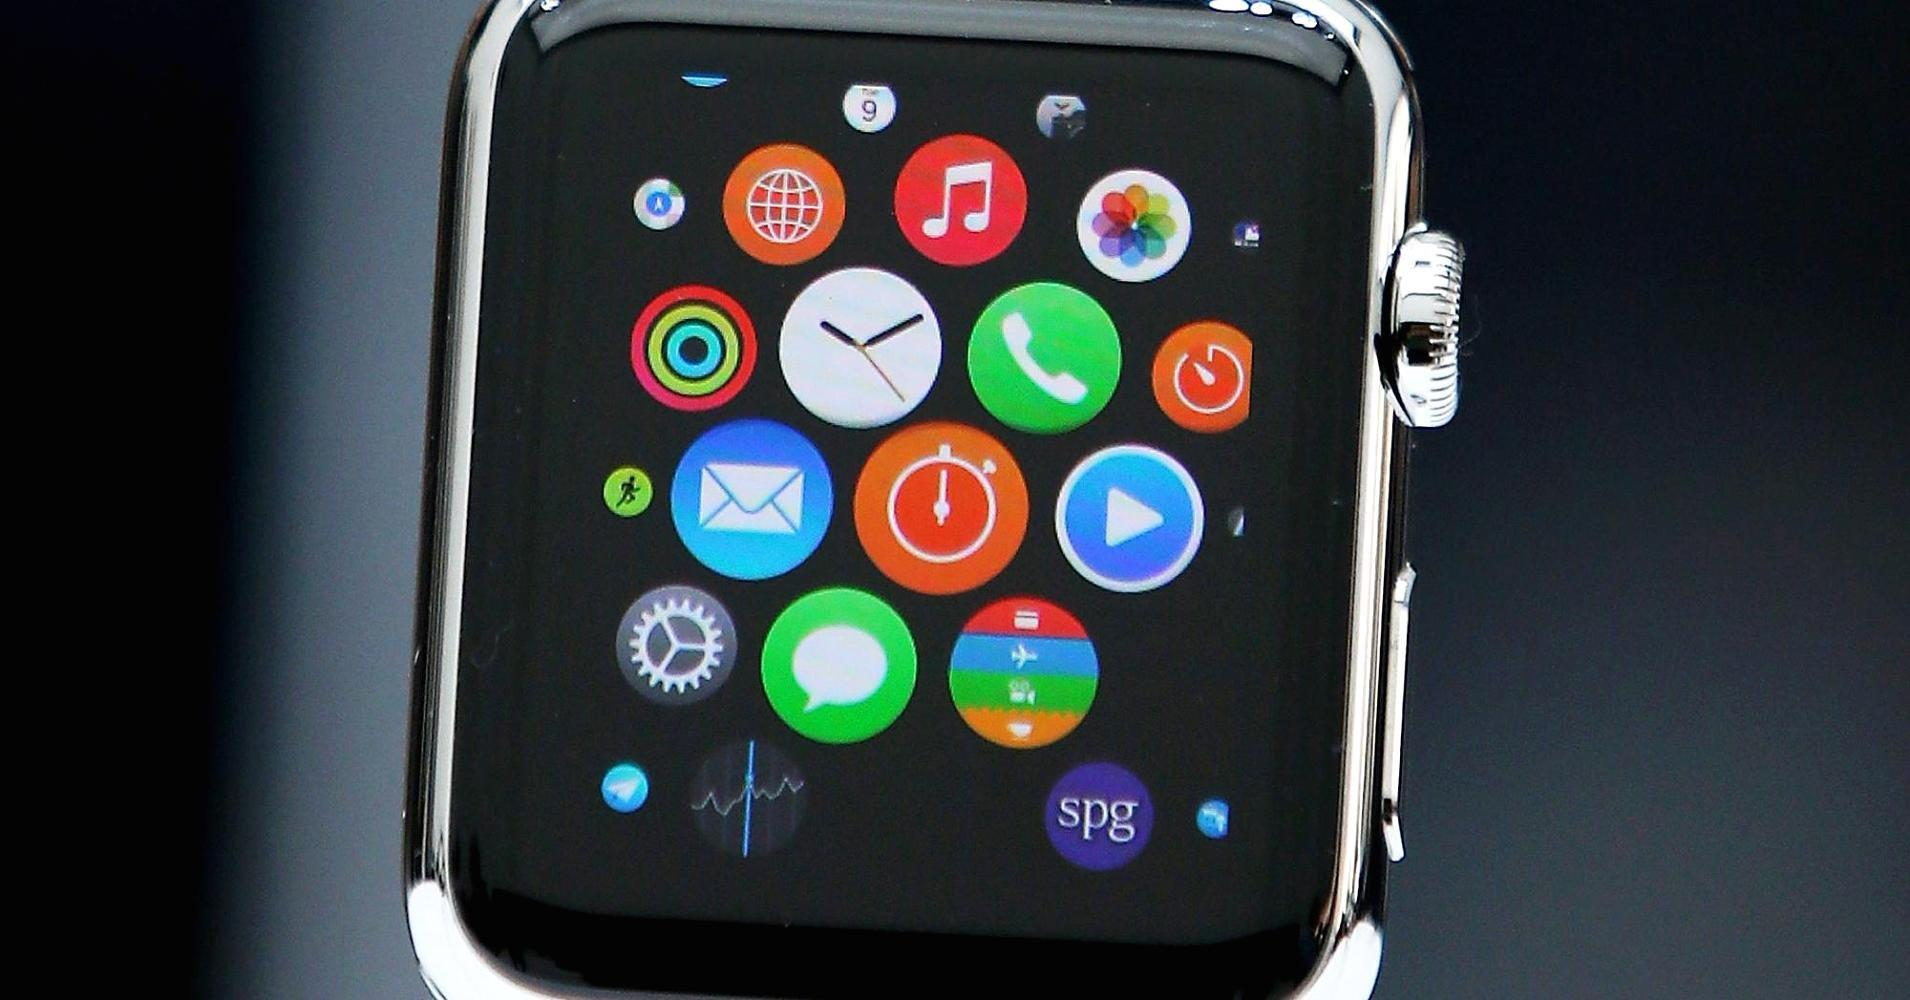 Apple Watch will ship in April: CEO Tim Cook